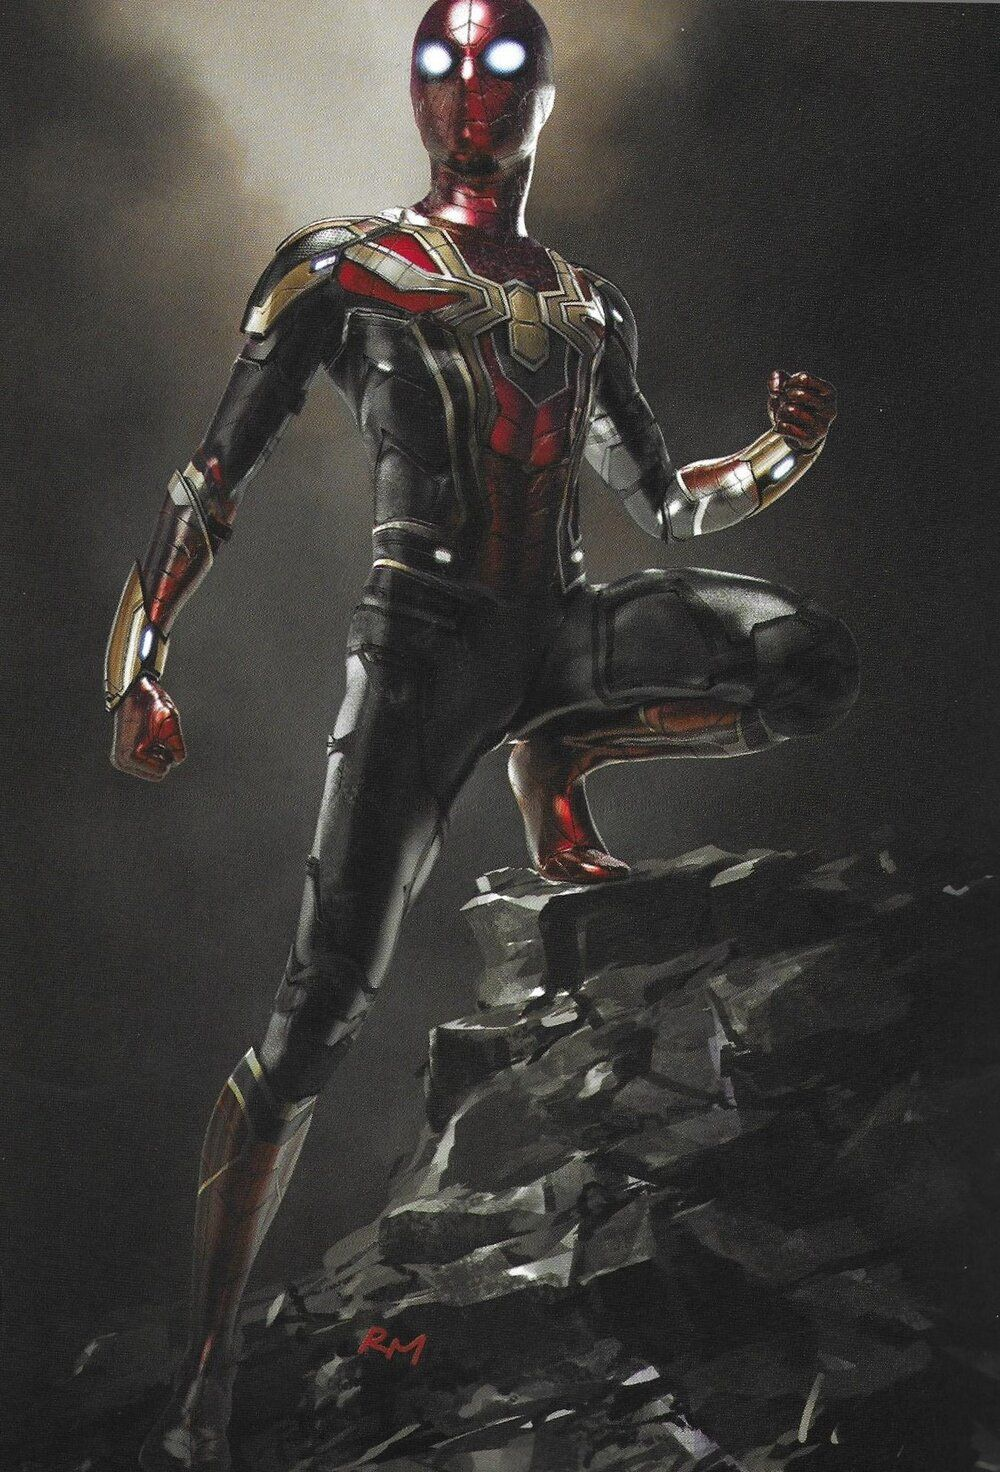 Lots Of Cool Concept Art For Spider Man Far From Home Features Hulkbuster Style Mysterio Suit Alternate Spidey Suits And Illusion Landscapes Spiderman Concept Art Hulkbuster